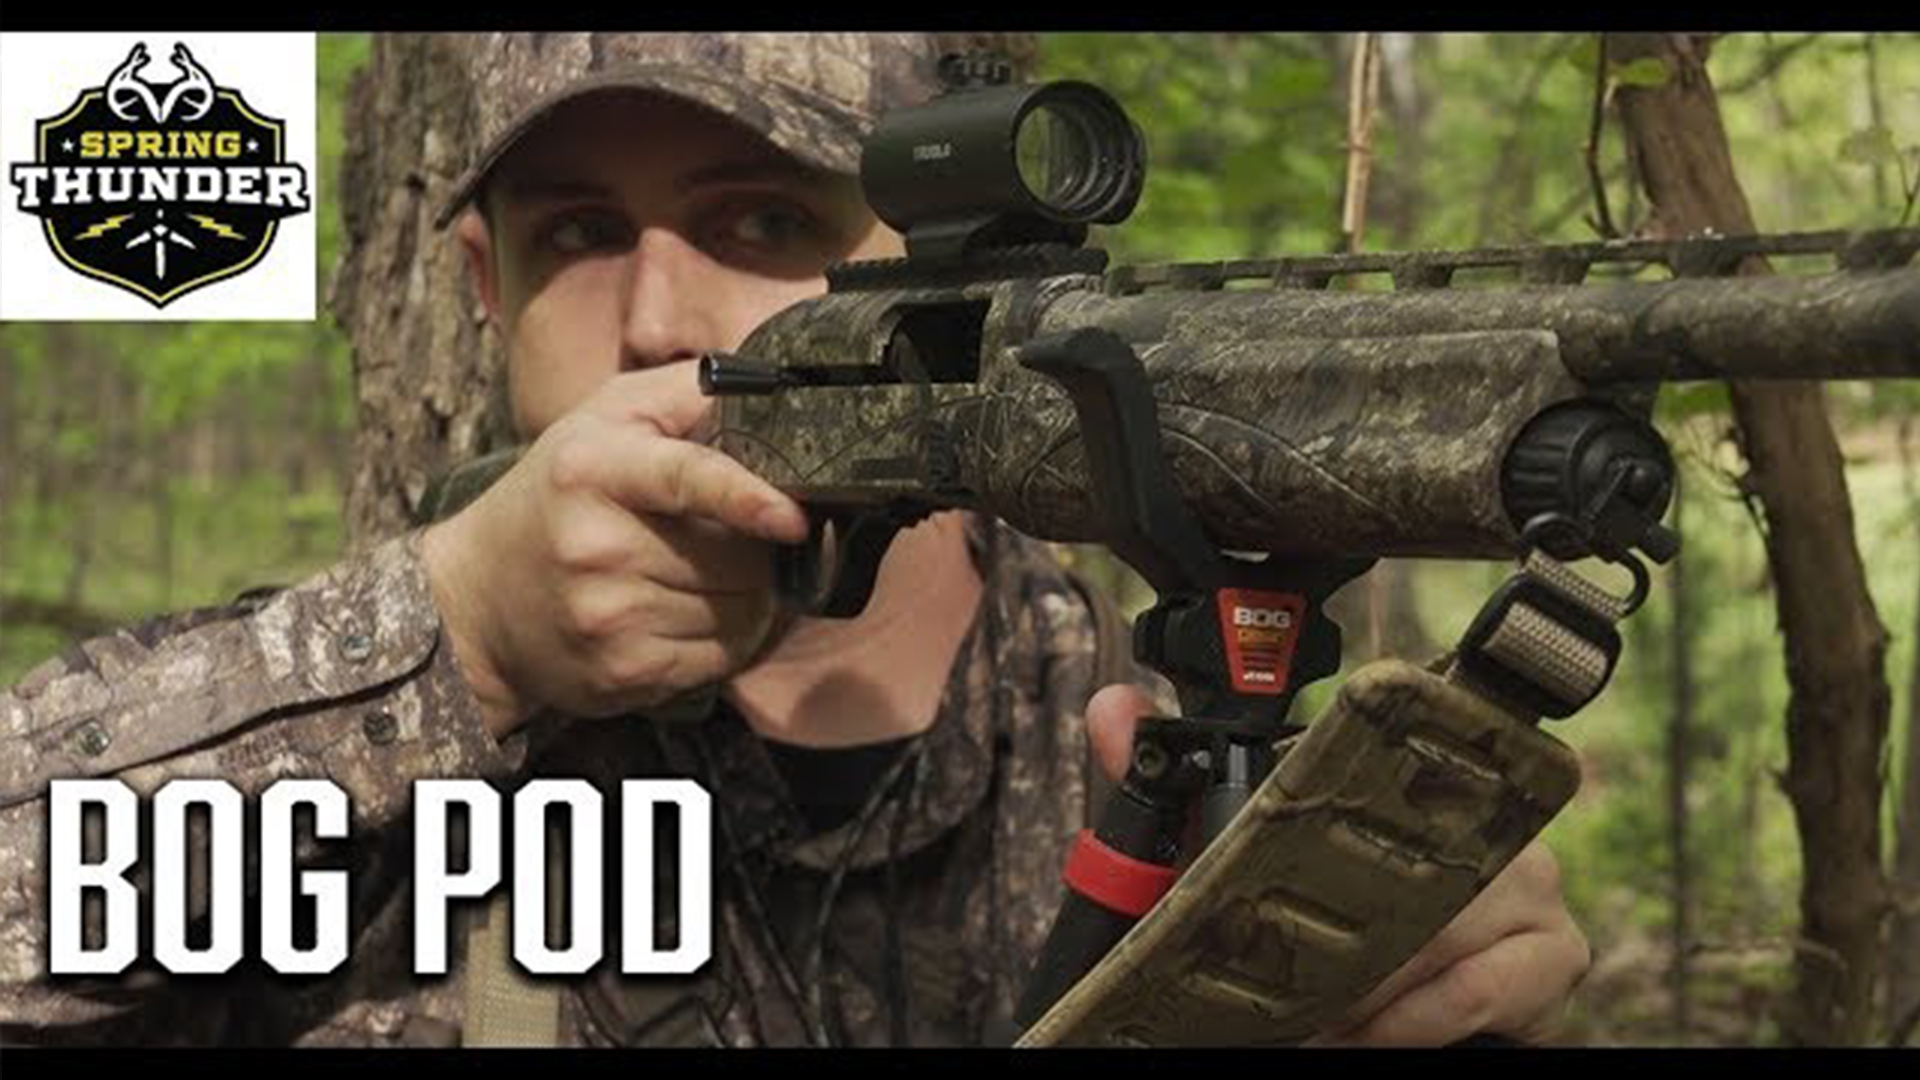 Tested: Realtree's Tyler Jordan Reviews the BOG CLD 3 Camo Shooting Tripod